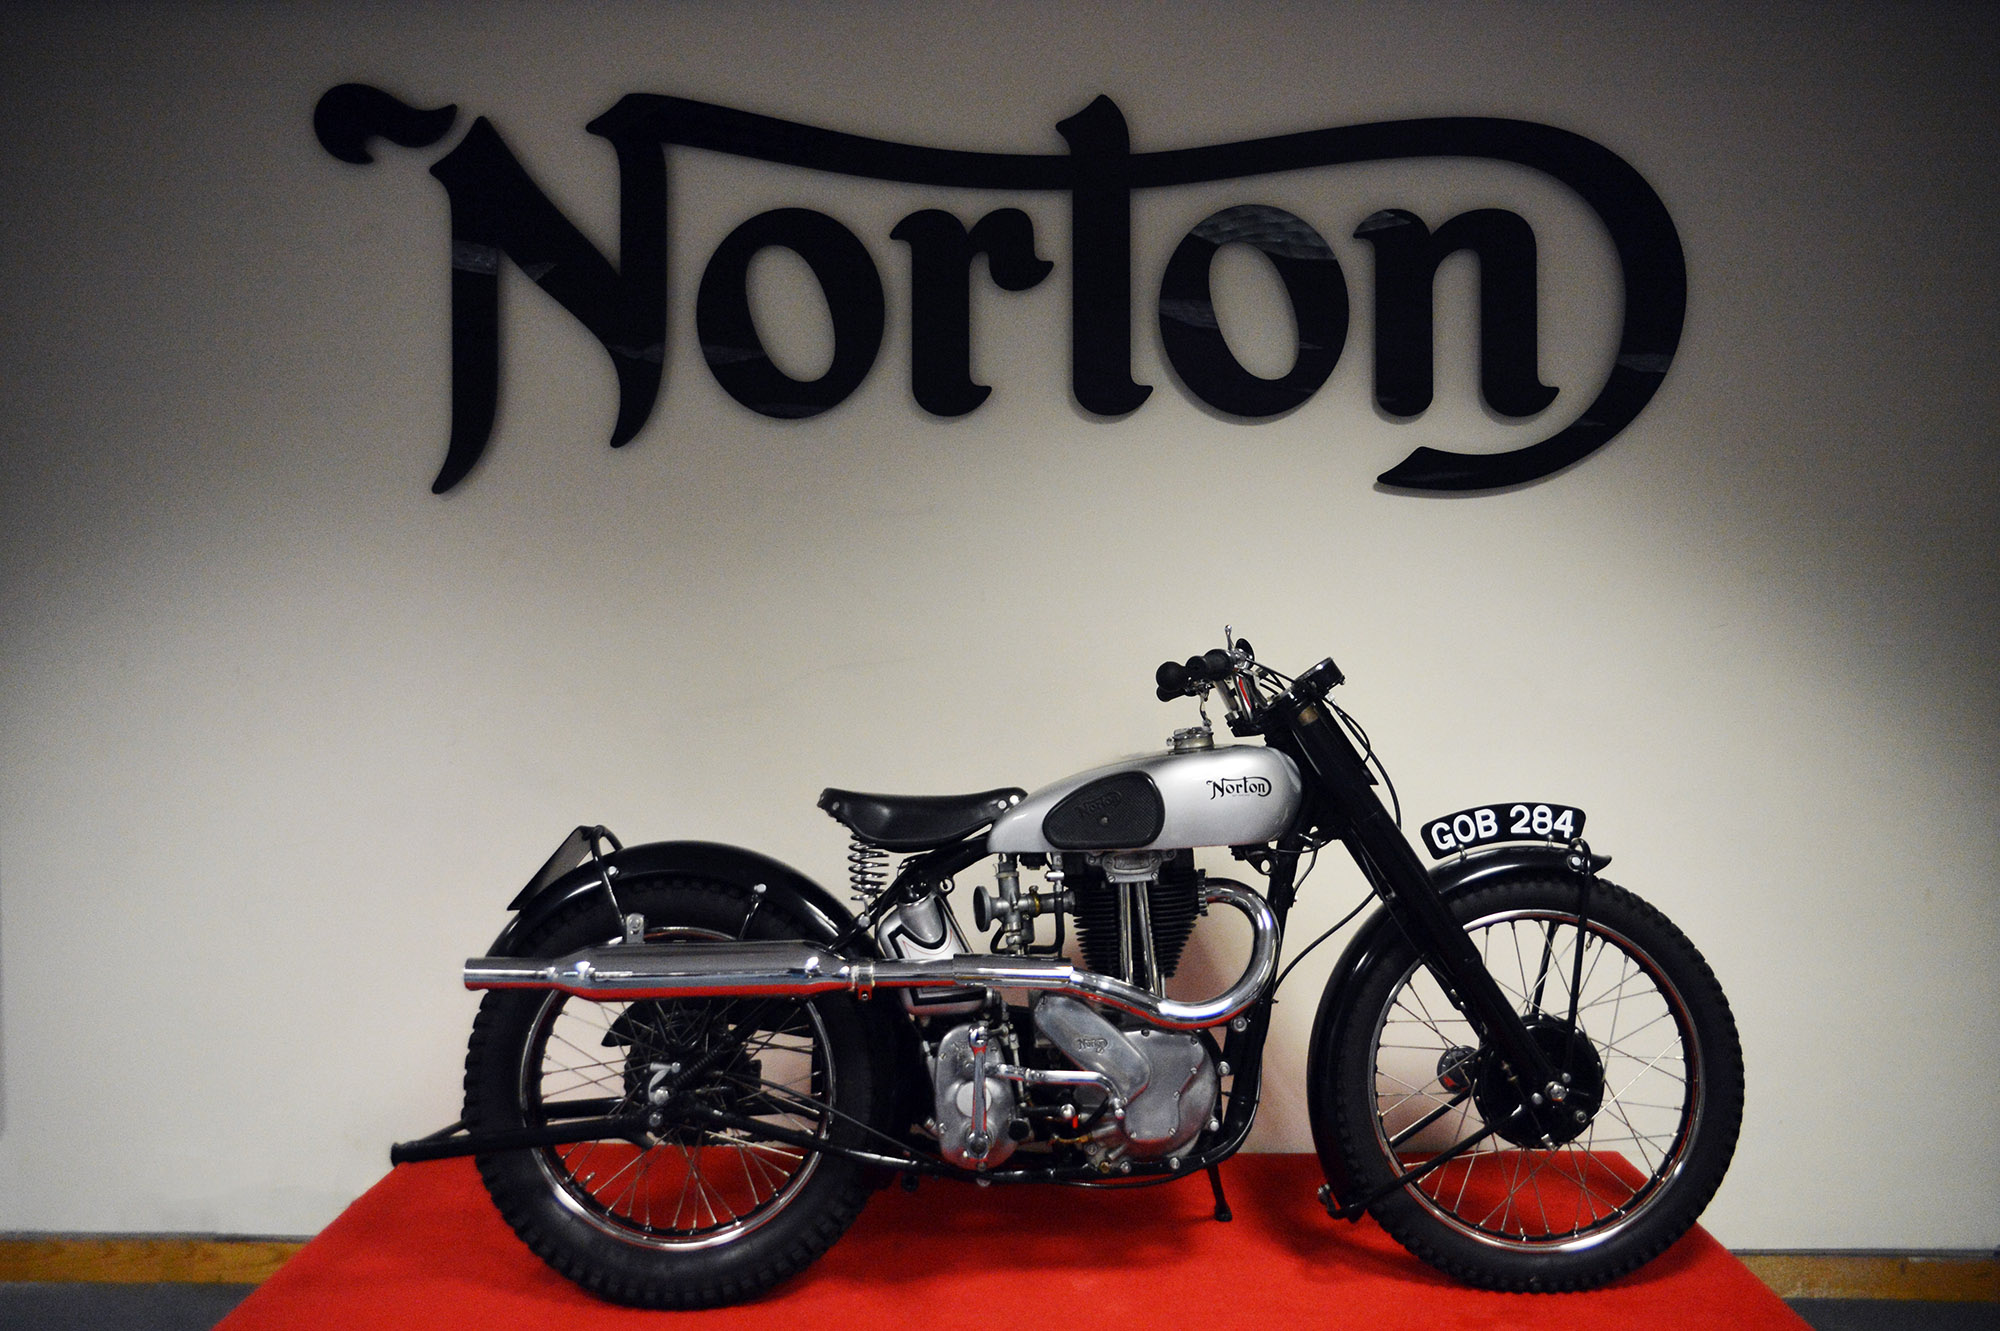 A historic Norton